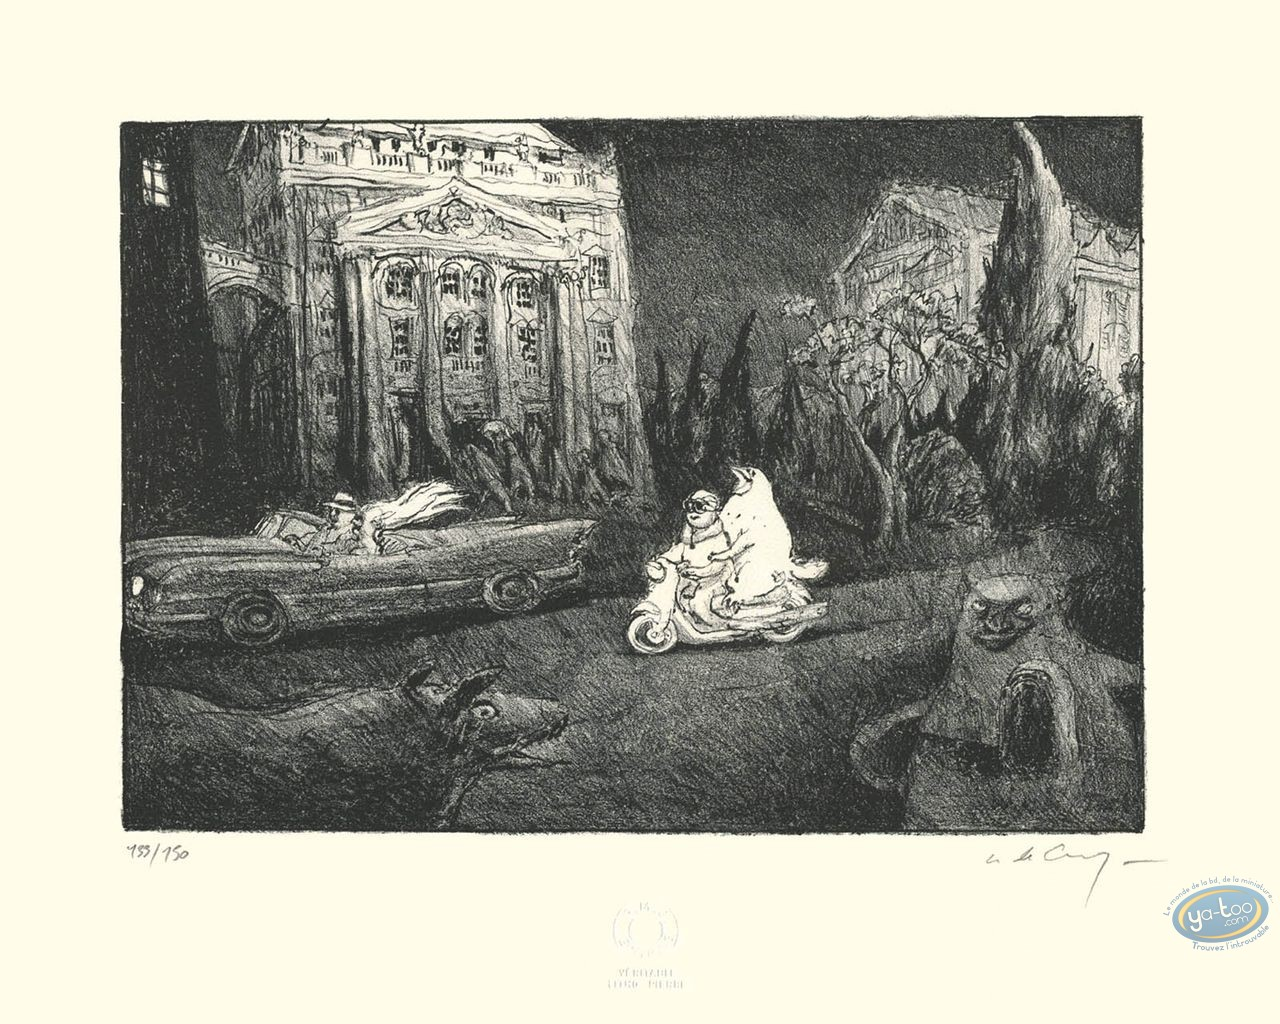 Lithography, The Scooter